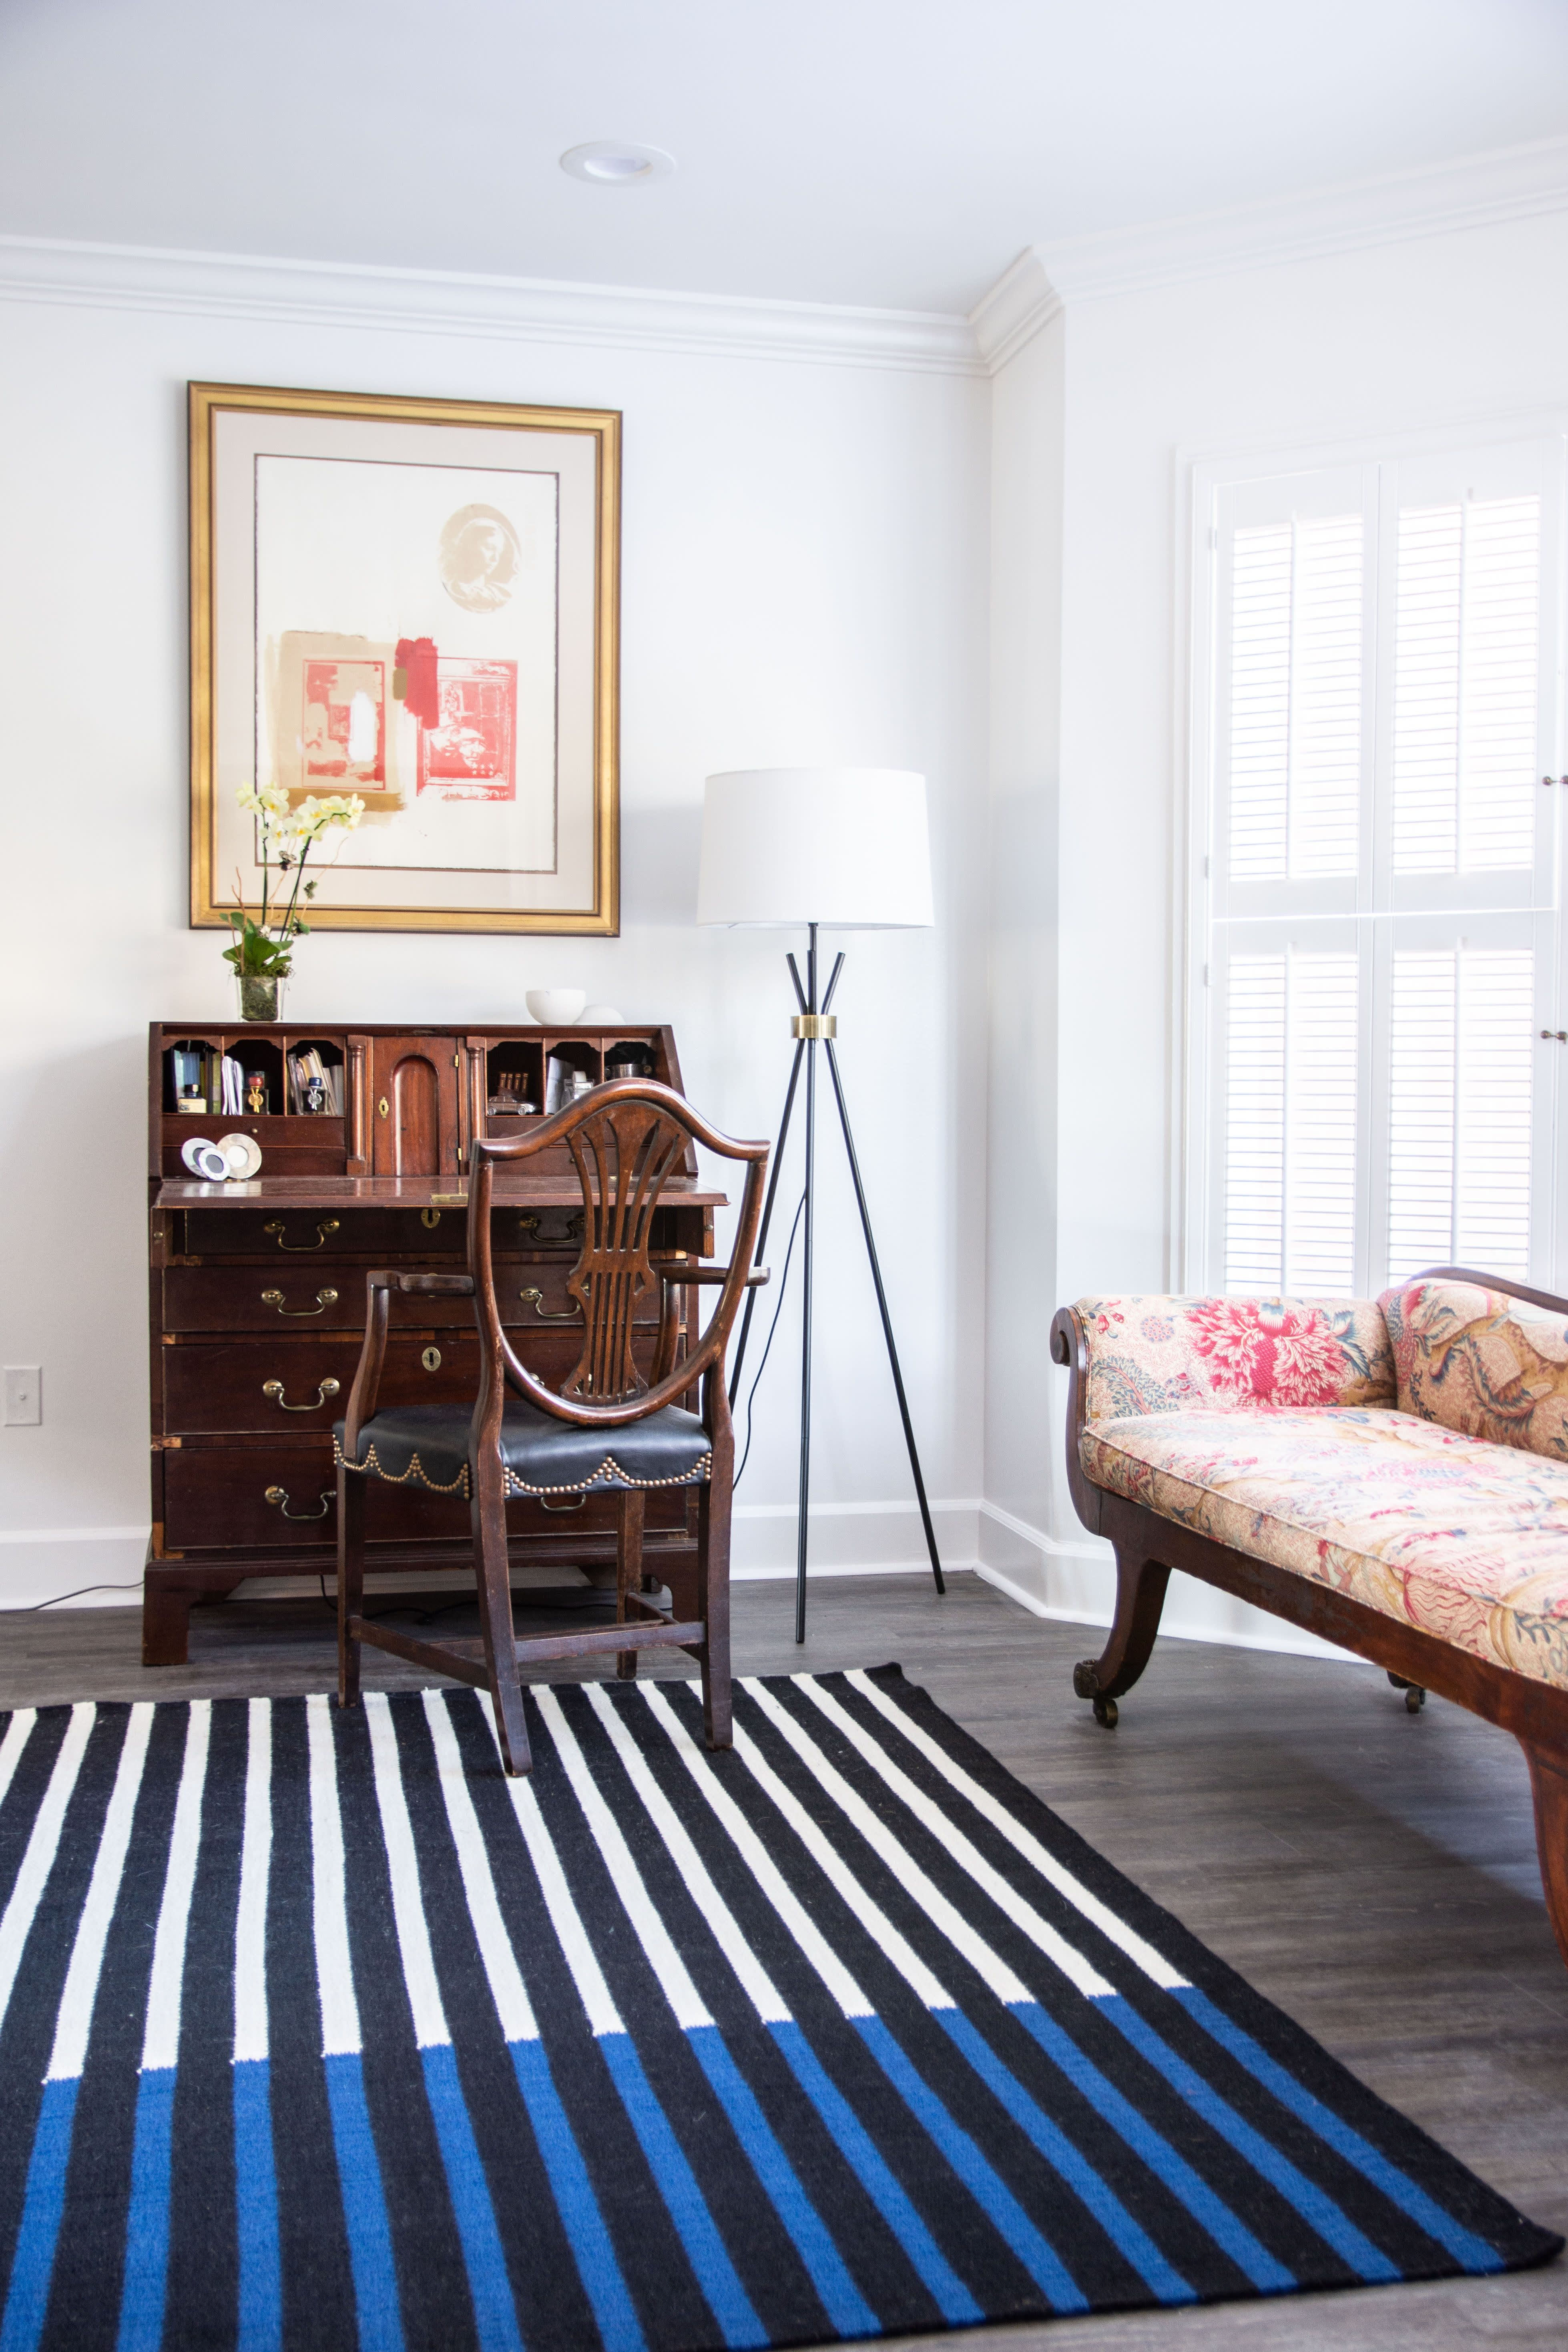 The 10 Living Room Paint Colors Design Pros Swear By ...